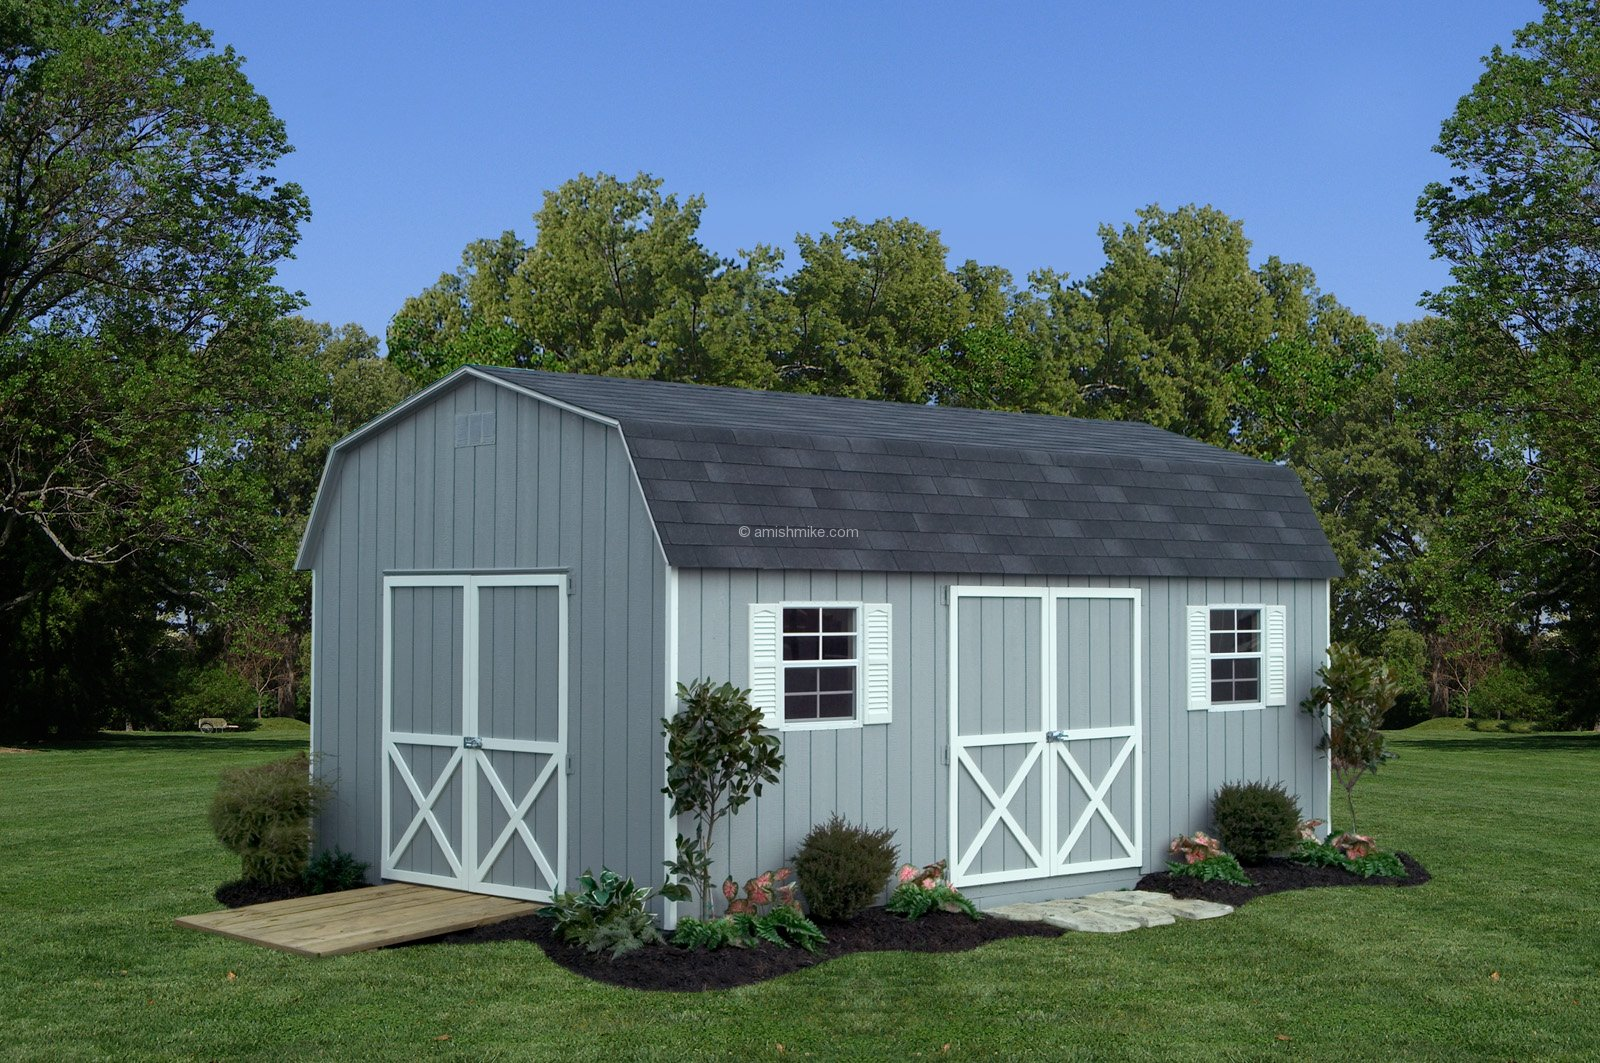 Traditional series dutch sheds amish mike amish sheds for Sheds and barns